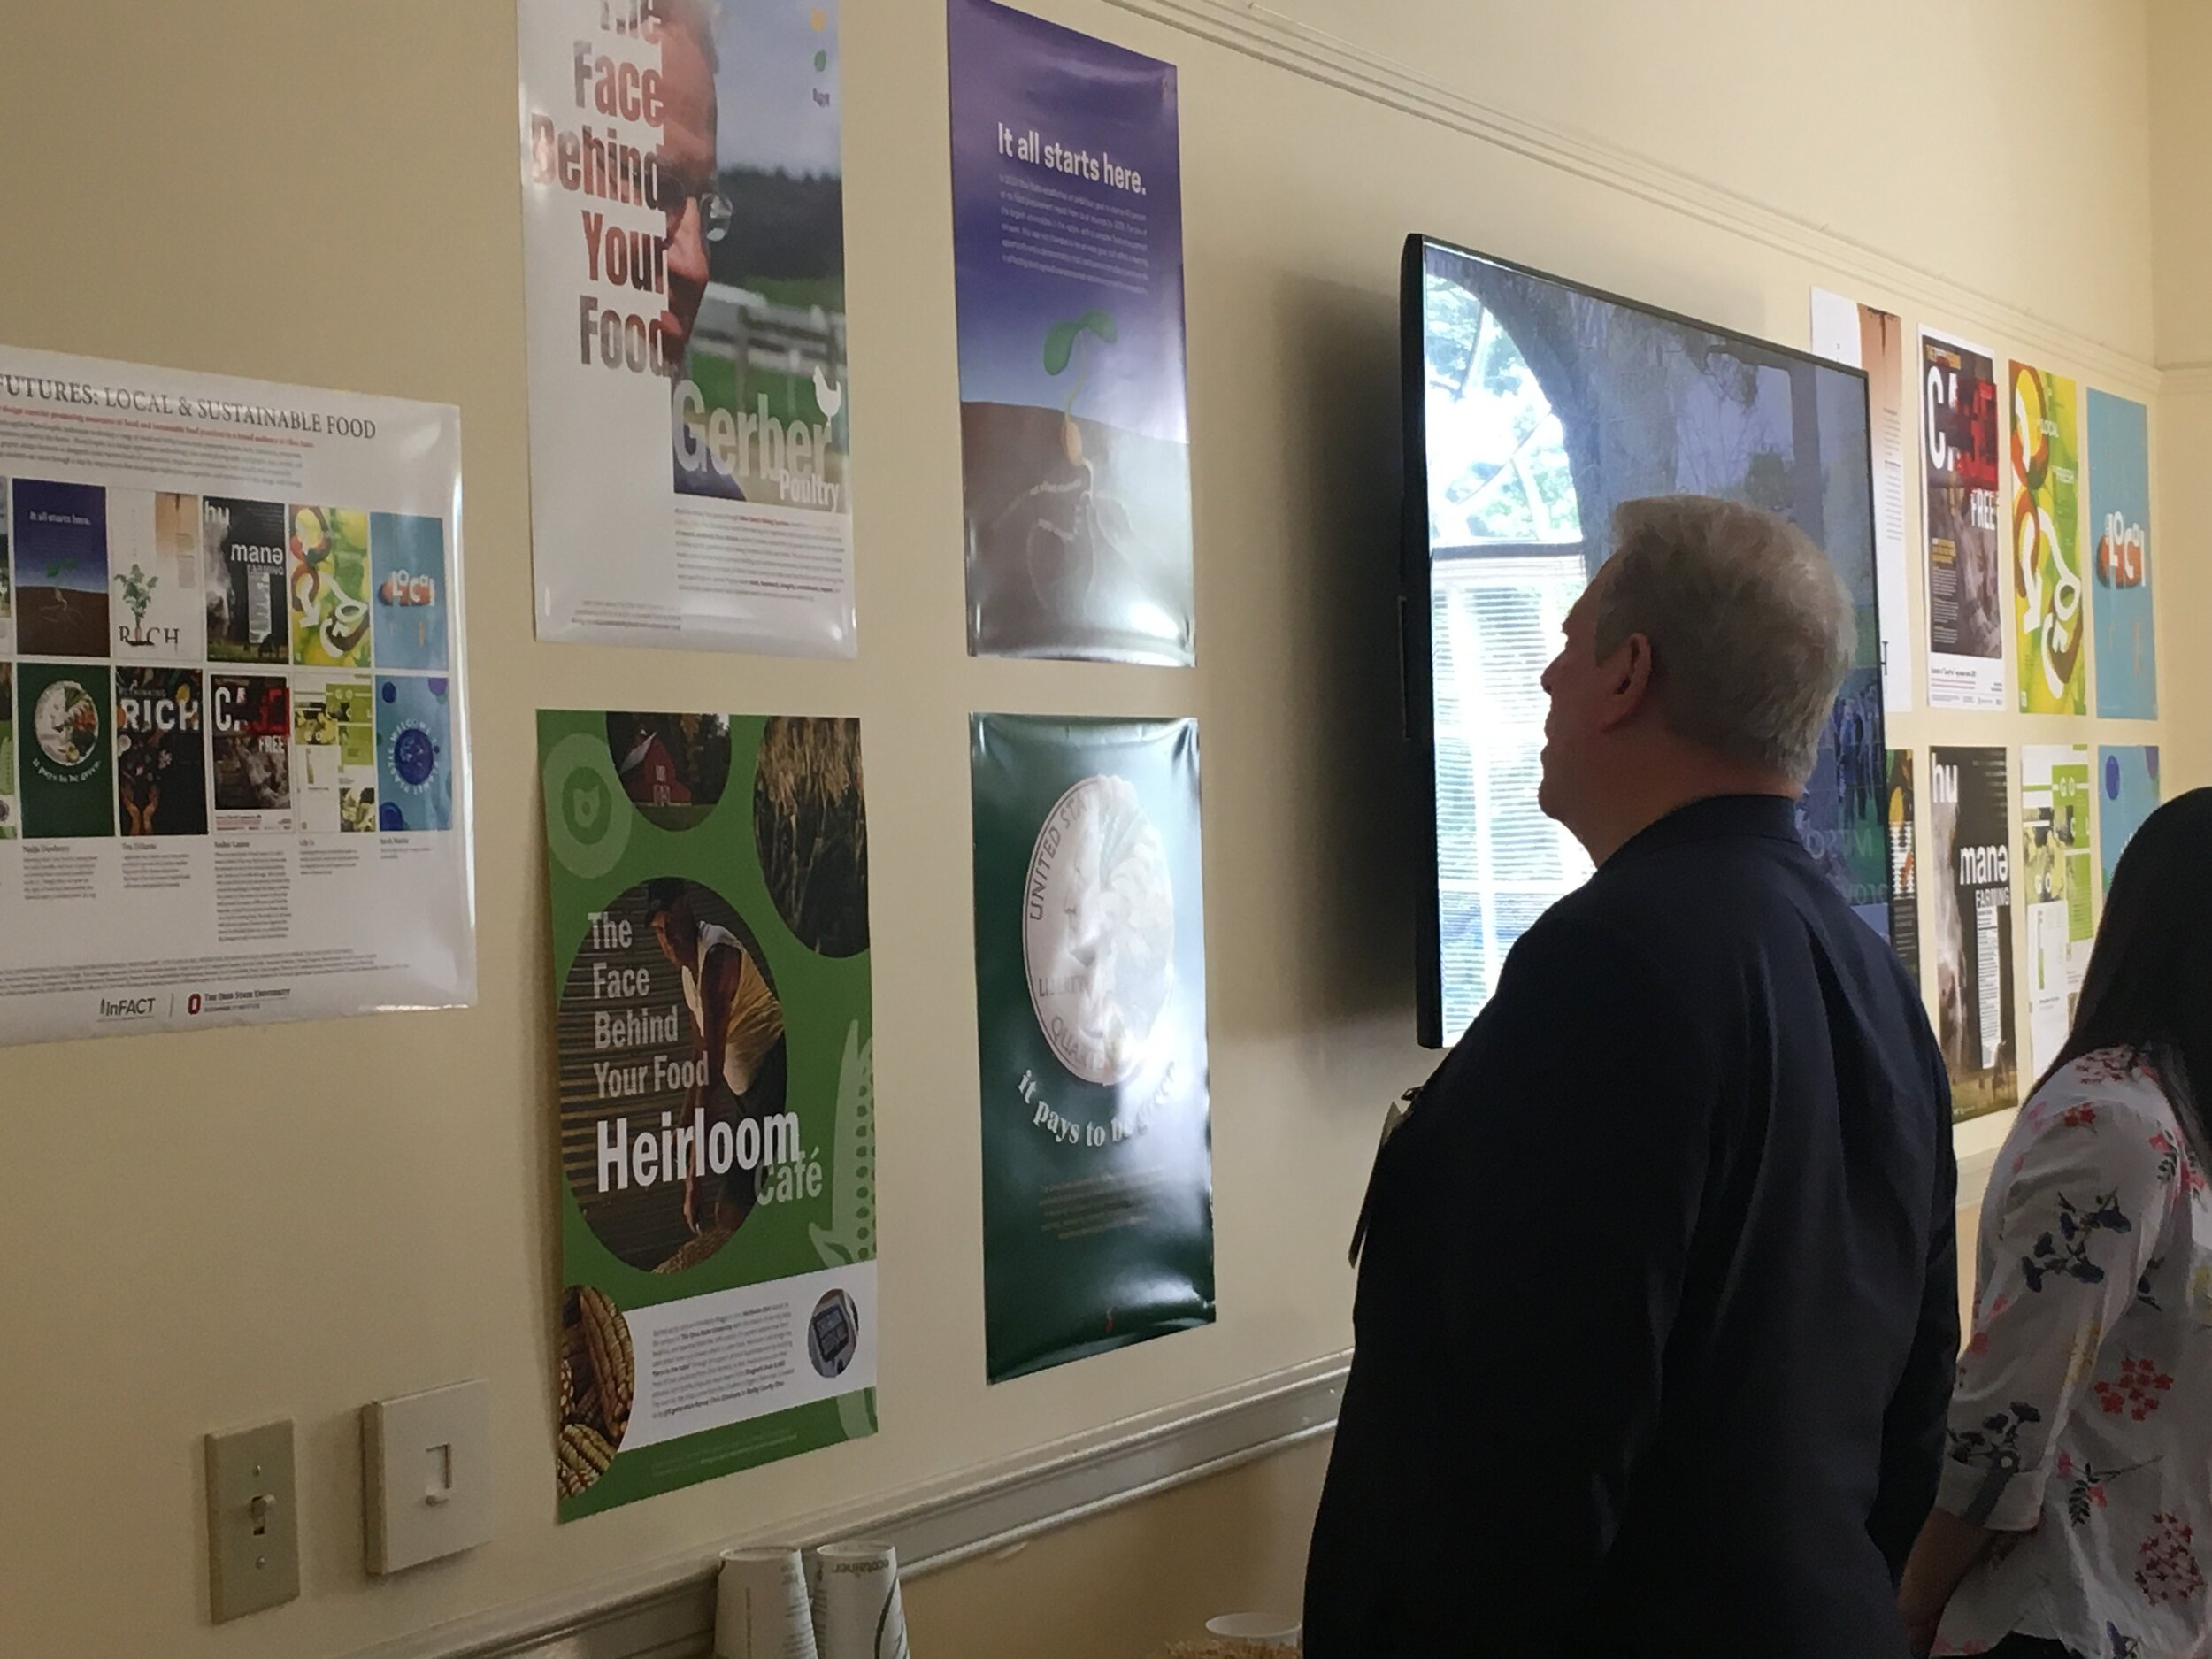 Student posters were also displayed at the On Food and Faith Conference, held in May at The Methodist Theological School in Ohio and funded by OSU inFACT. Among the attendees was former Vice President Al Gore (pictured).